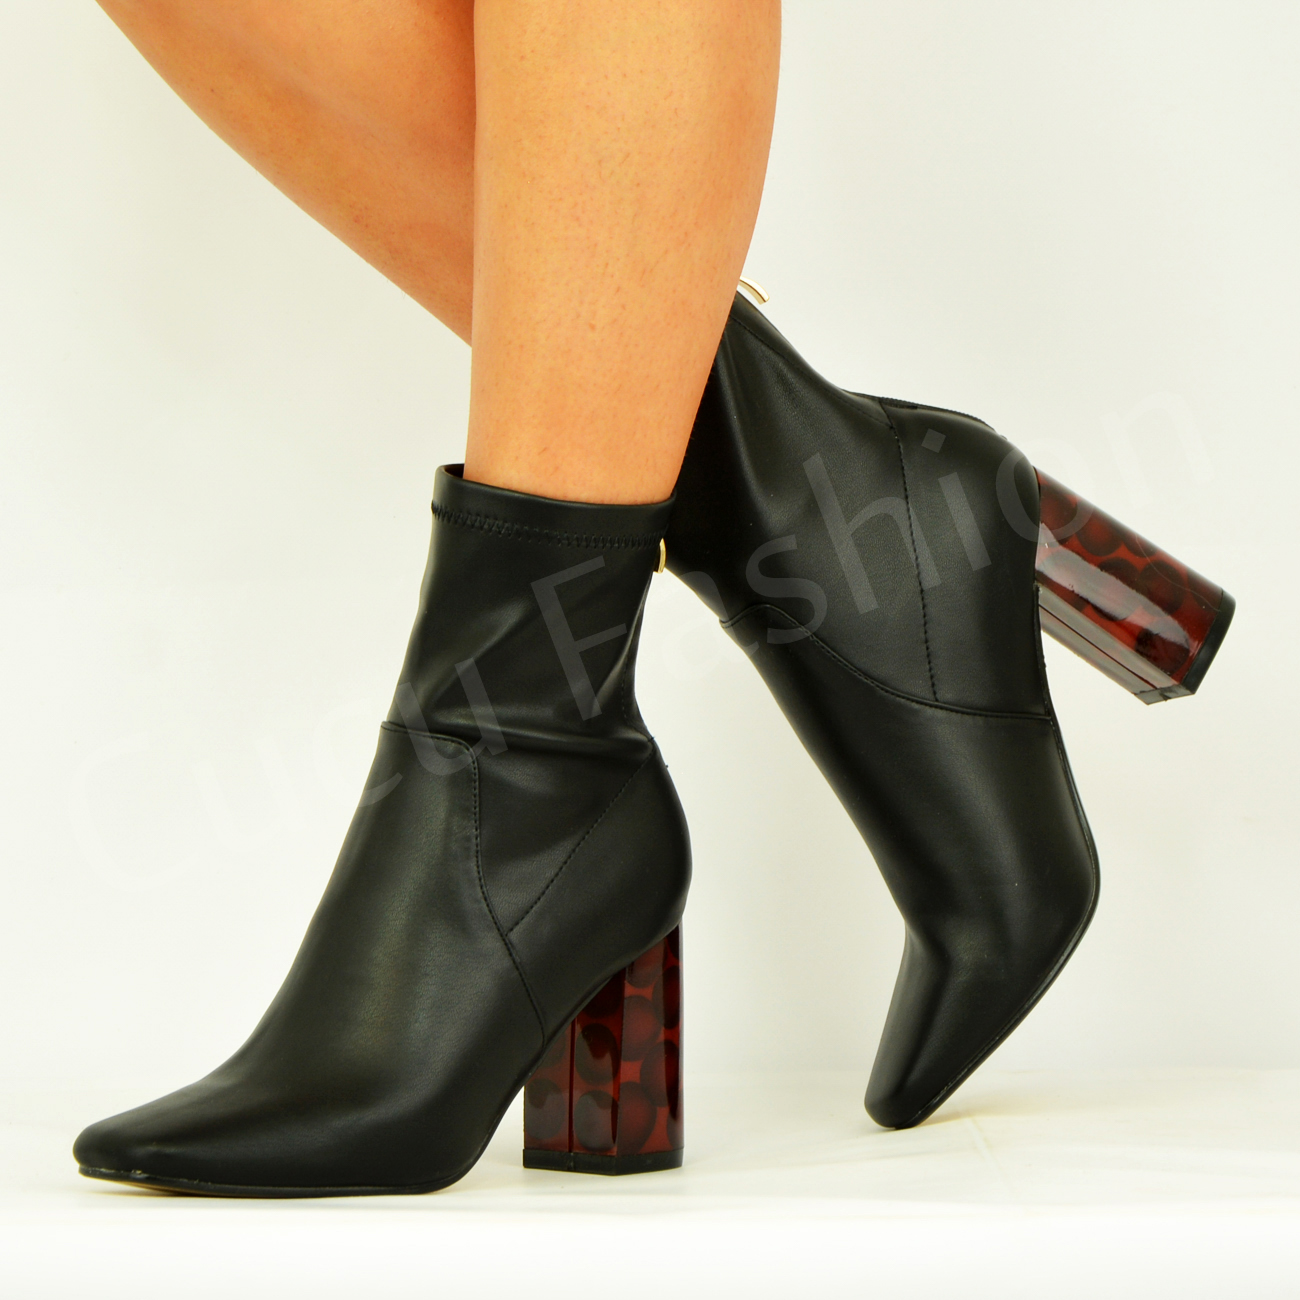 bbcdc488ee9 Low Heel Ankle Boots Uk